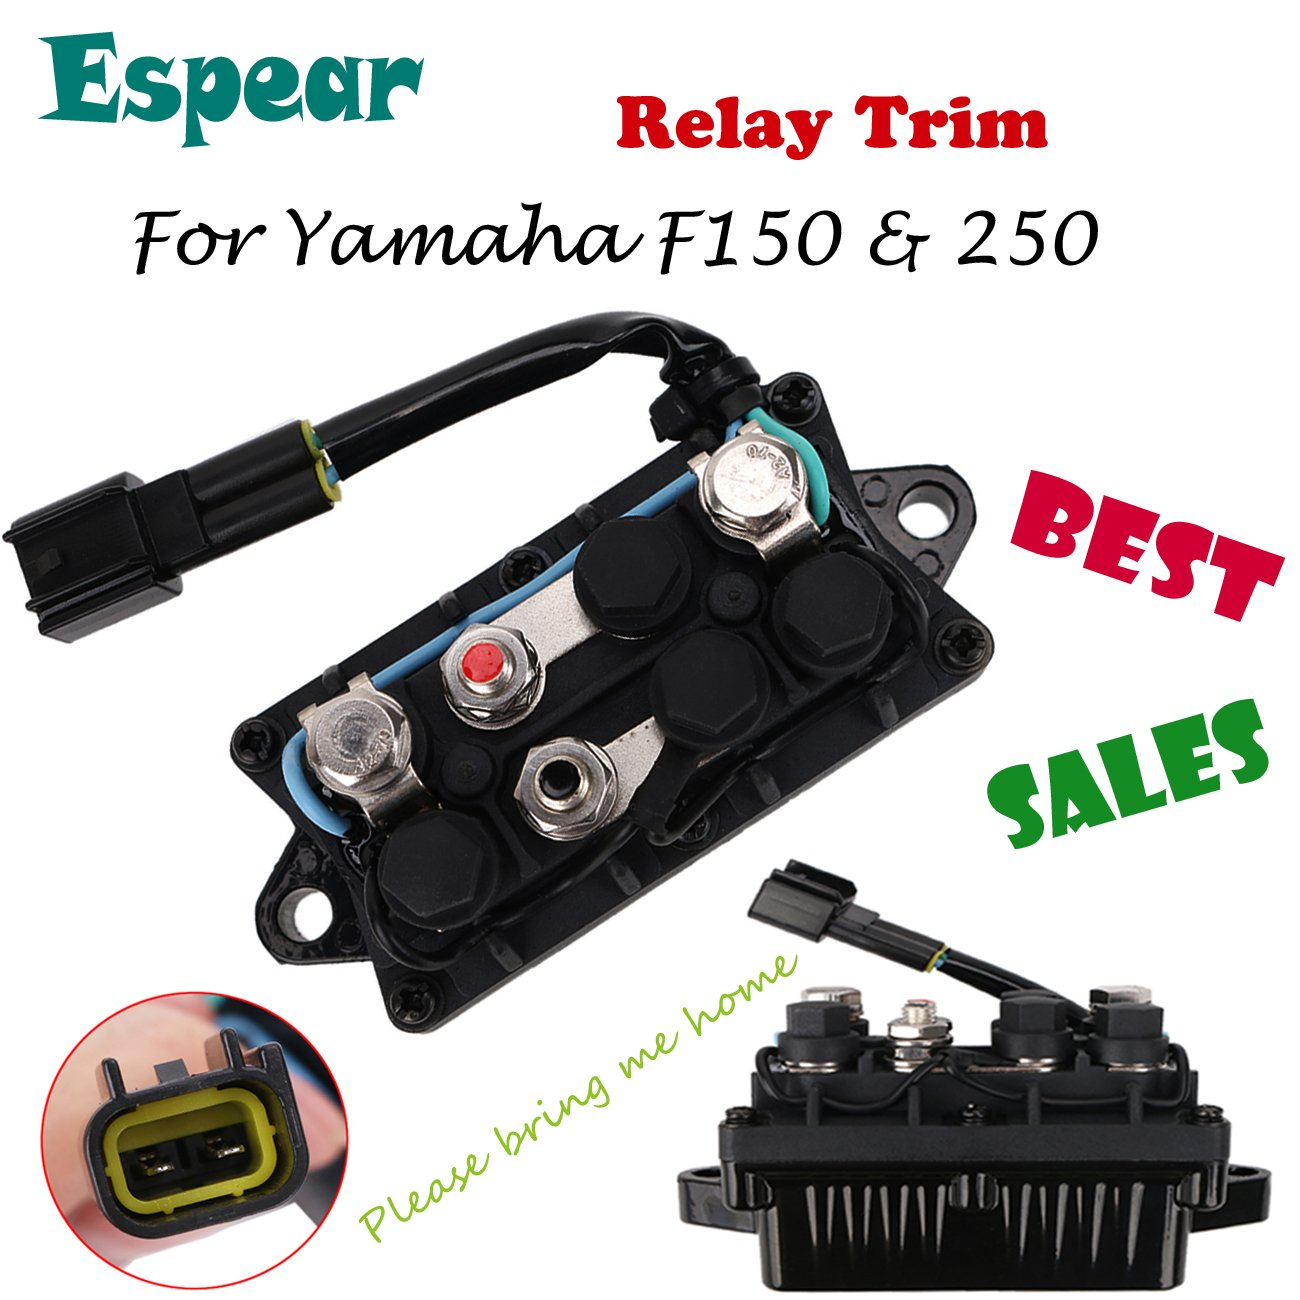 Fits YAMAHA F150 /& 250 F225 OUTBOARD TRIM RELAY Replaces Part #63P-81950-00-00